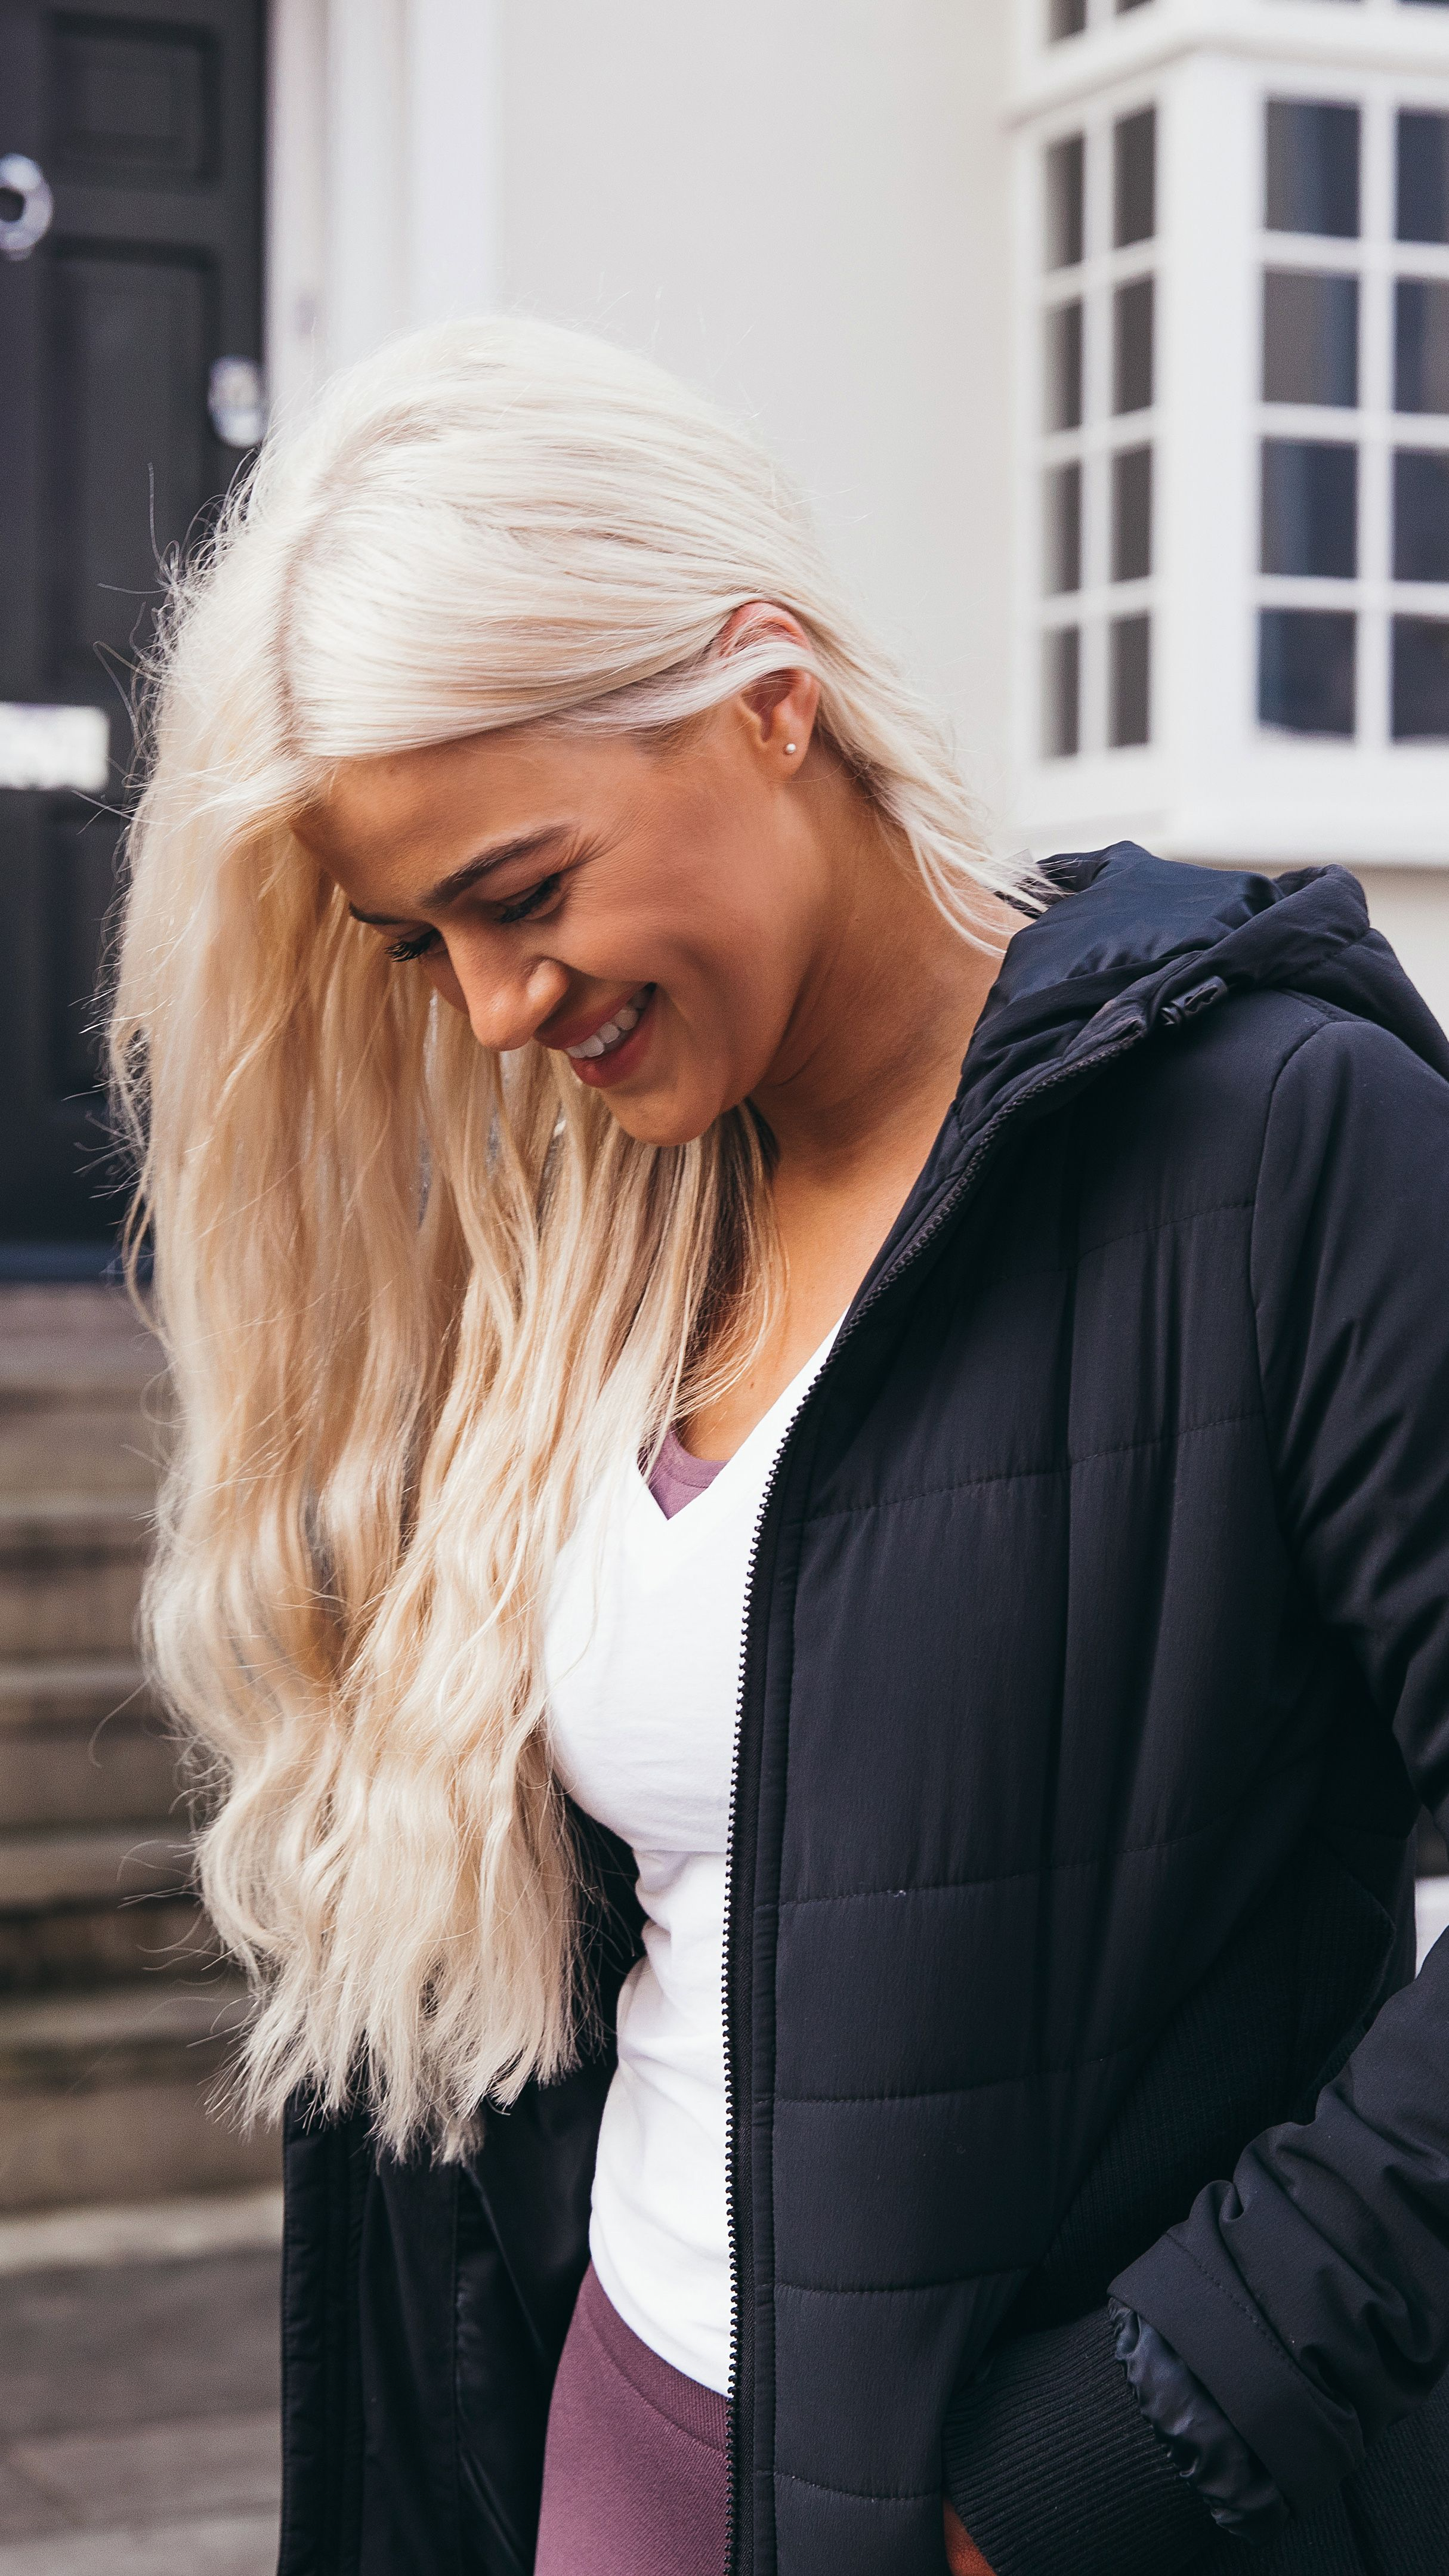 The Reflective Logo Of The Gymshark Women S Mellow Puffer Jacket Helps You Stay Visible As The Days Get Shorter Dur Puffer Jacket Black Puffer Jackets Gymshark [ 4319 x 2429 Pixel ]